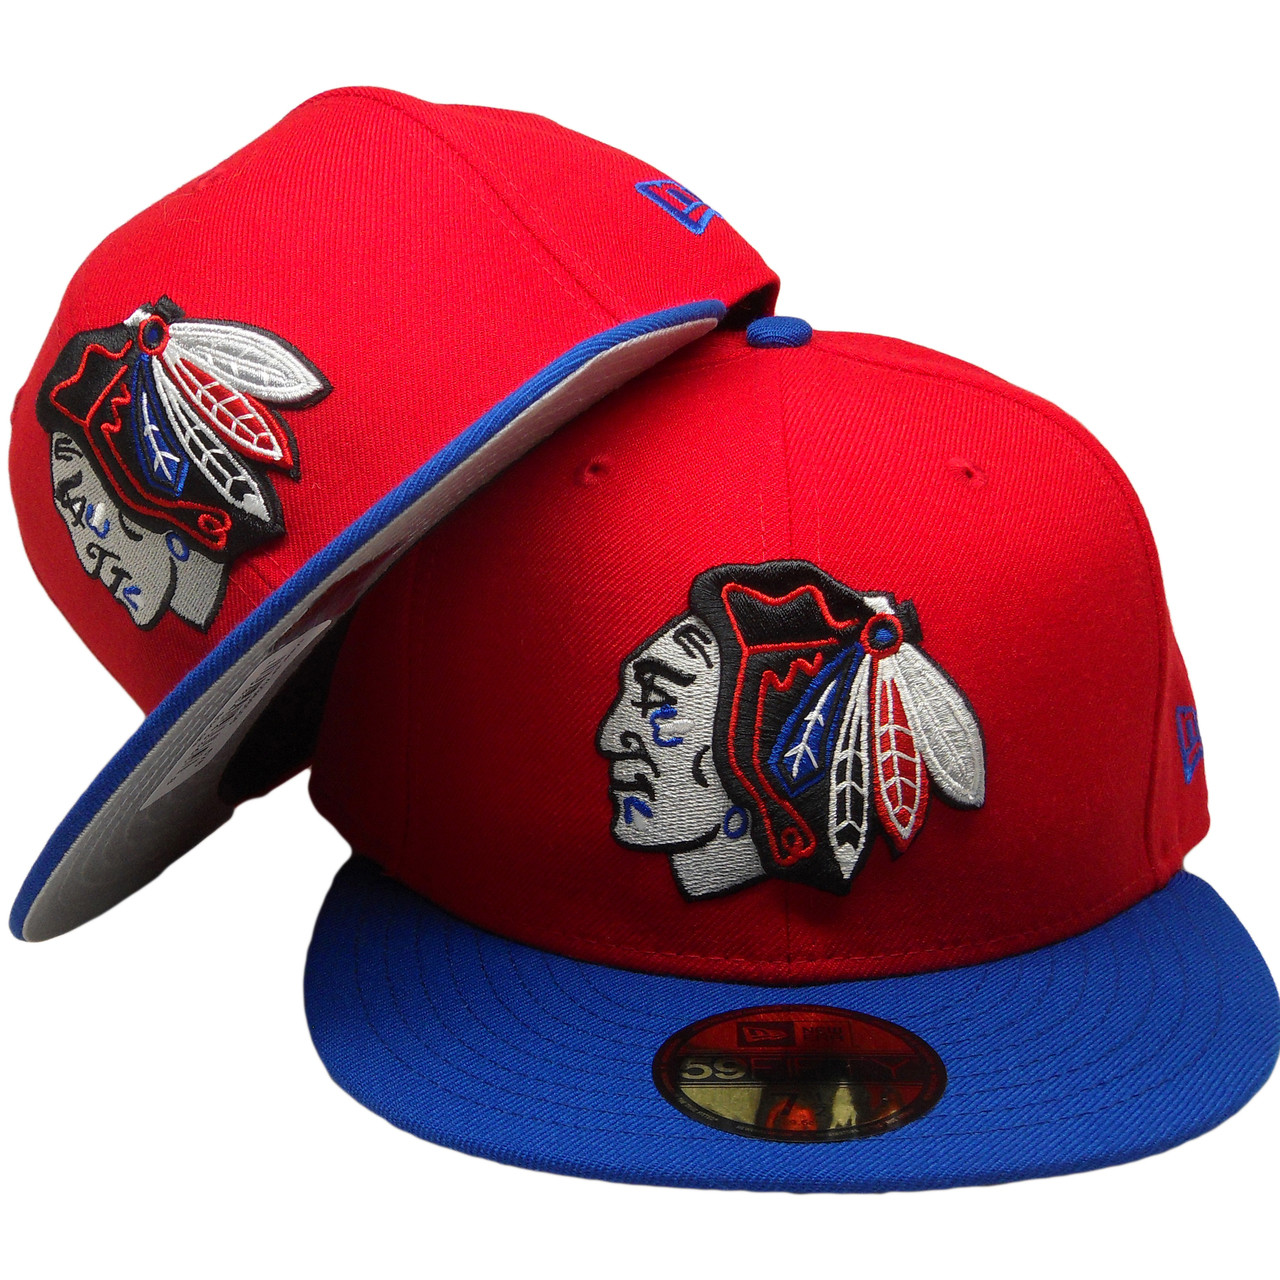 57a538ef6 Chicago Blackhawks New Era Custom 59Fifty Fitted Hat - Red, Royal, Black -  ECapsUnlimited.com